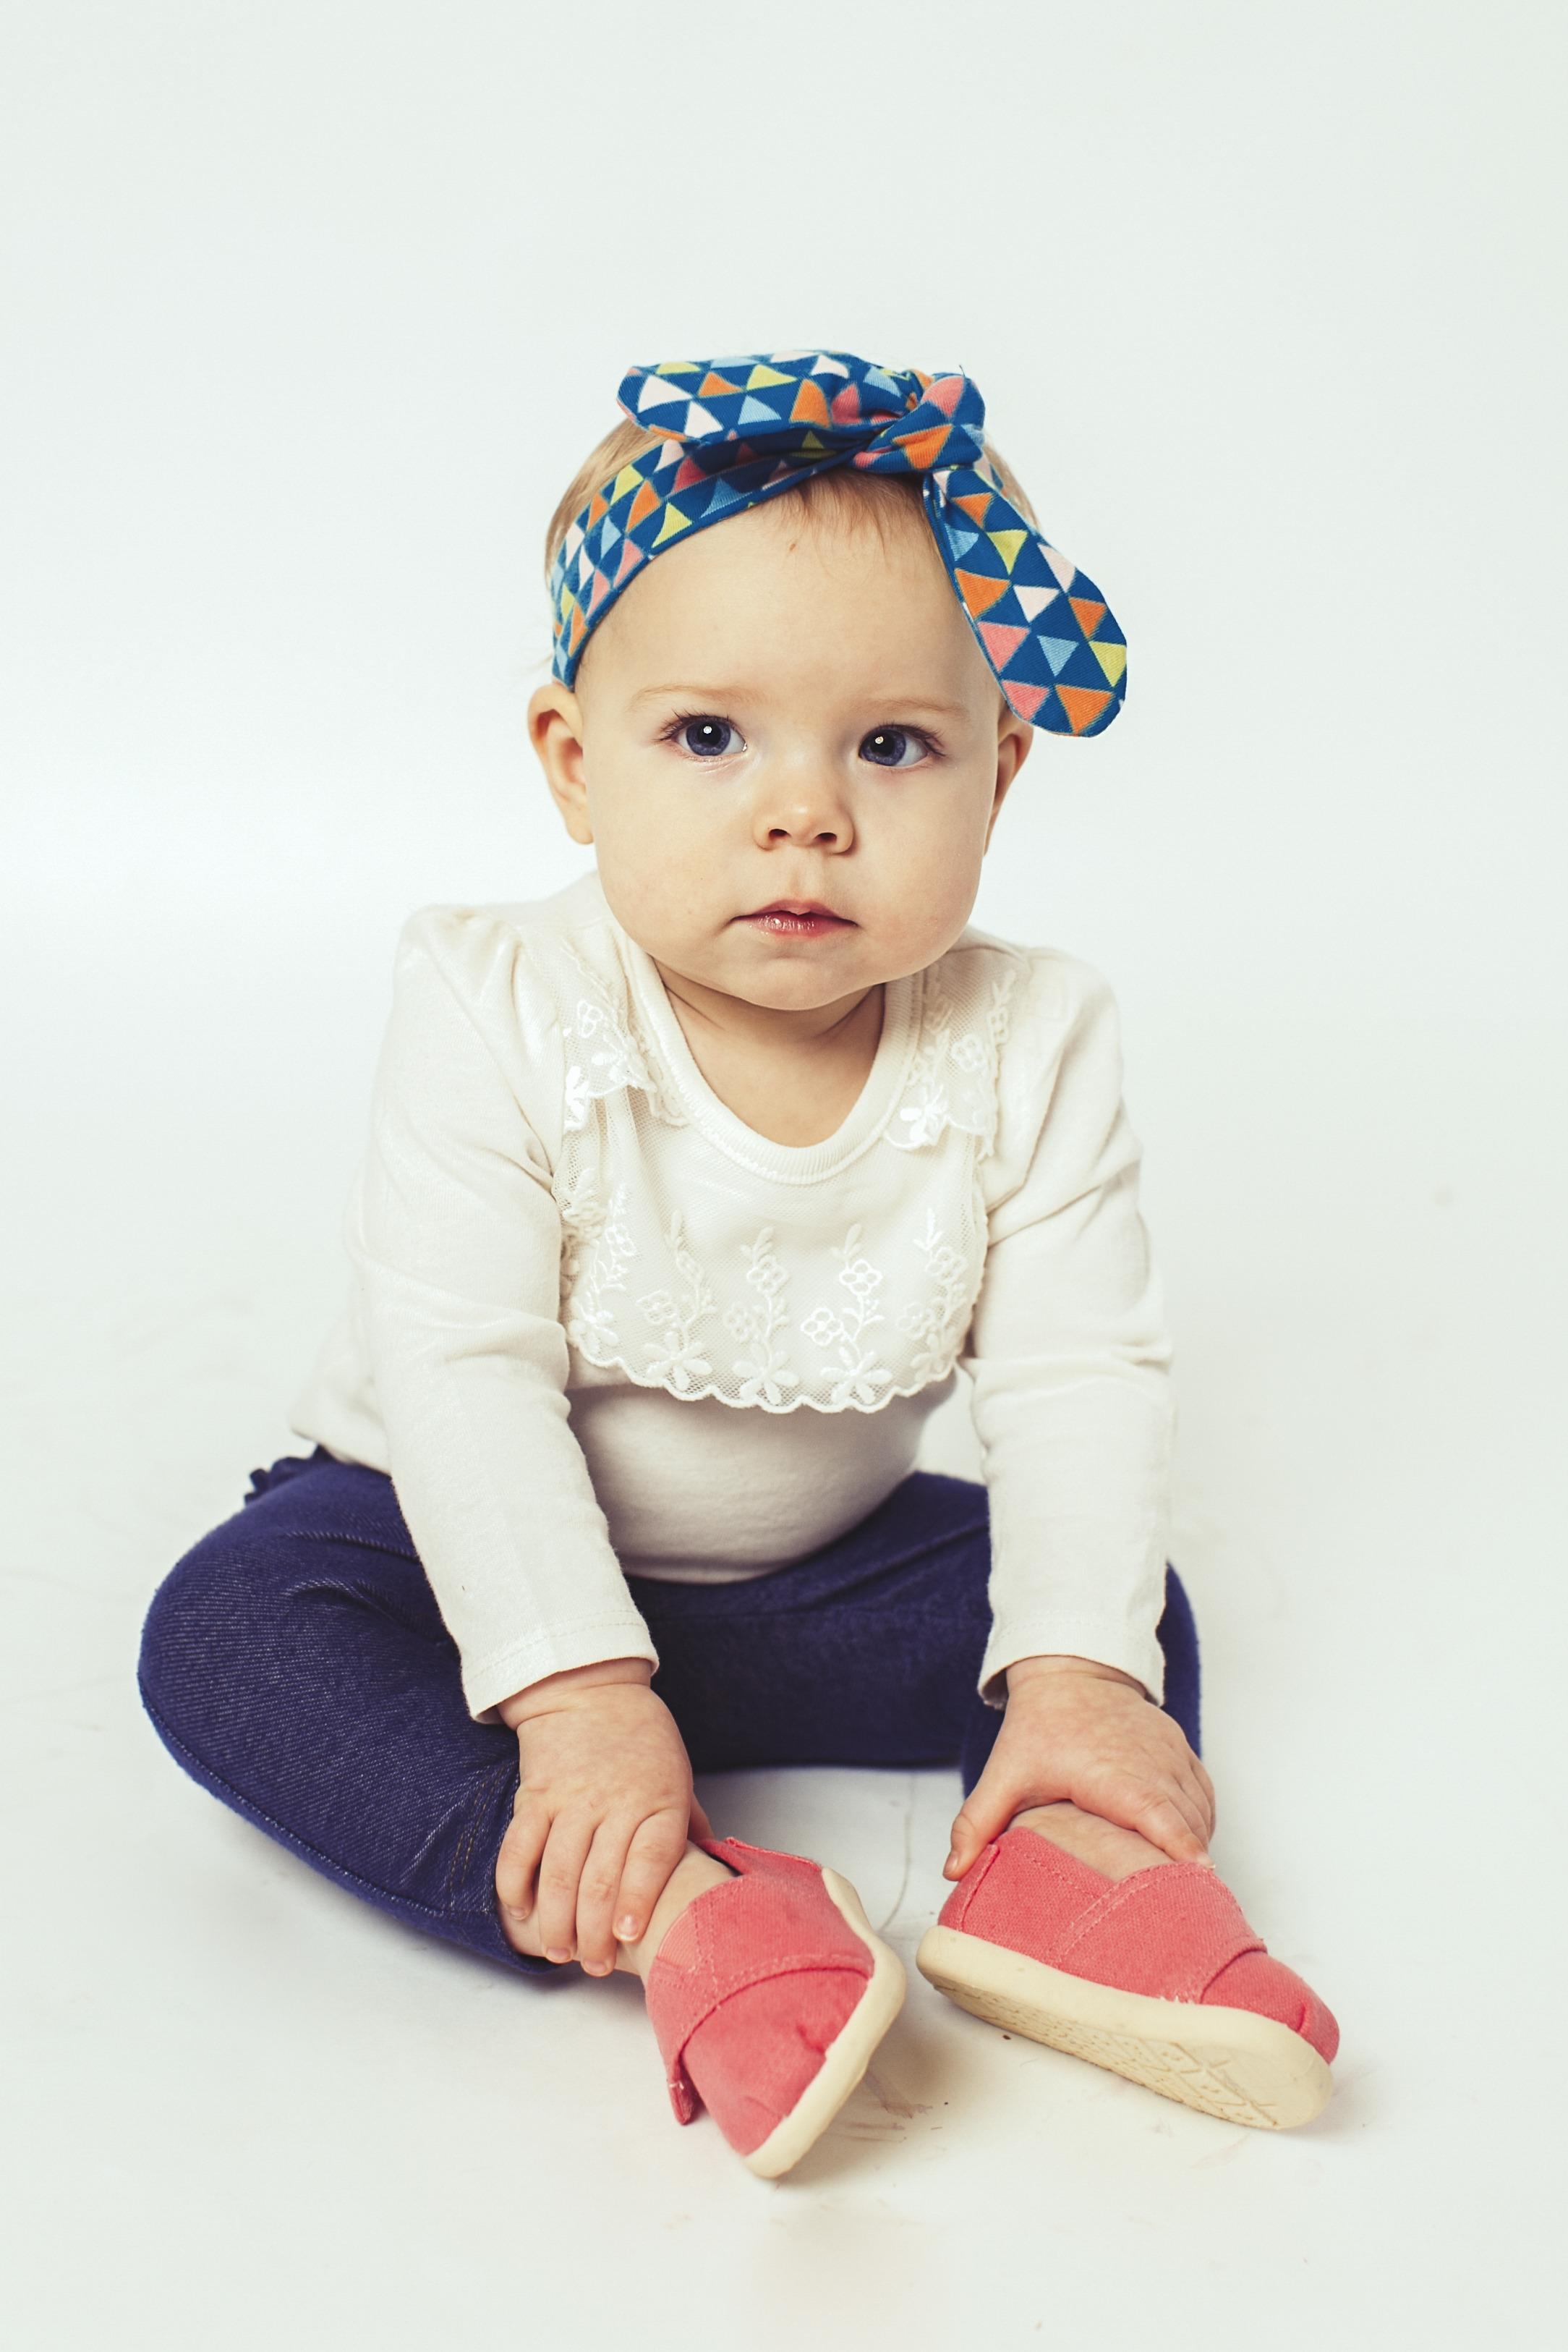 Brandon Chesbro Family Photographer Photo-45.jpg